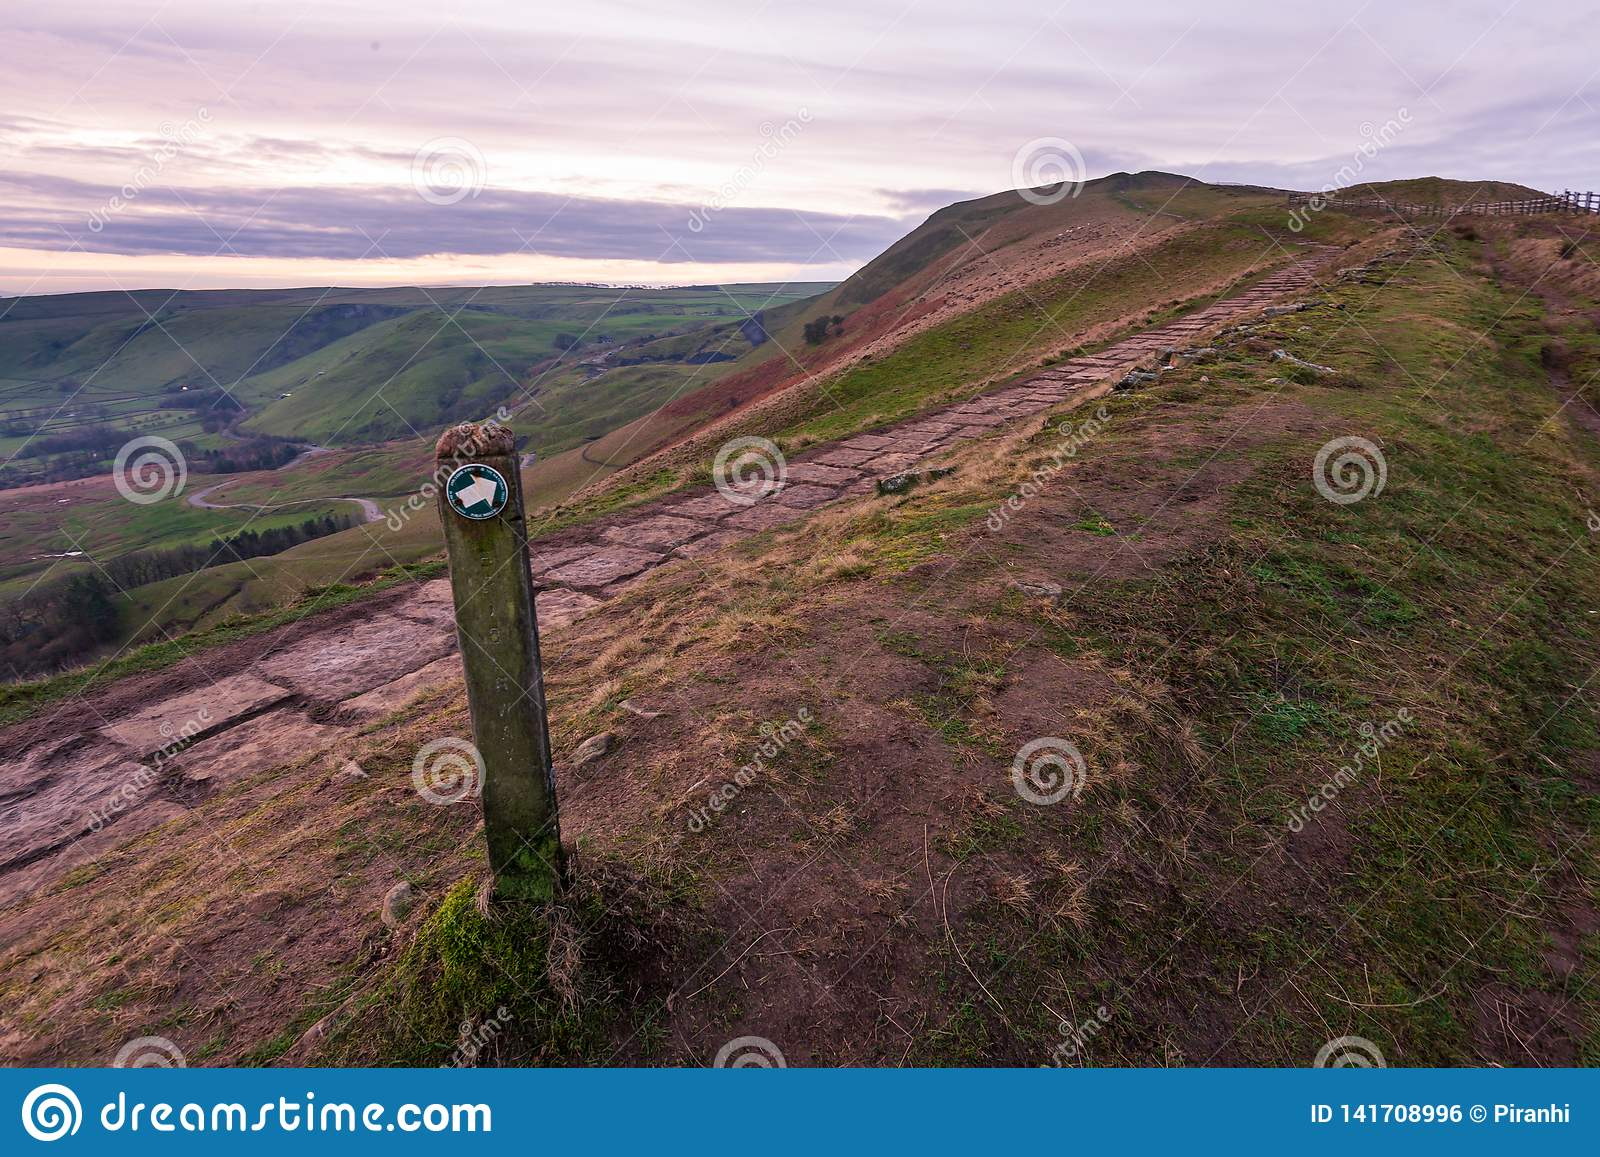 A view of Mam Tor in the Peak District early morning